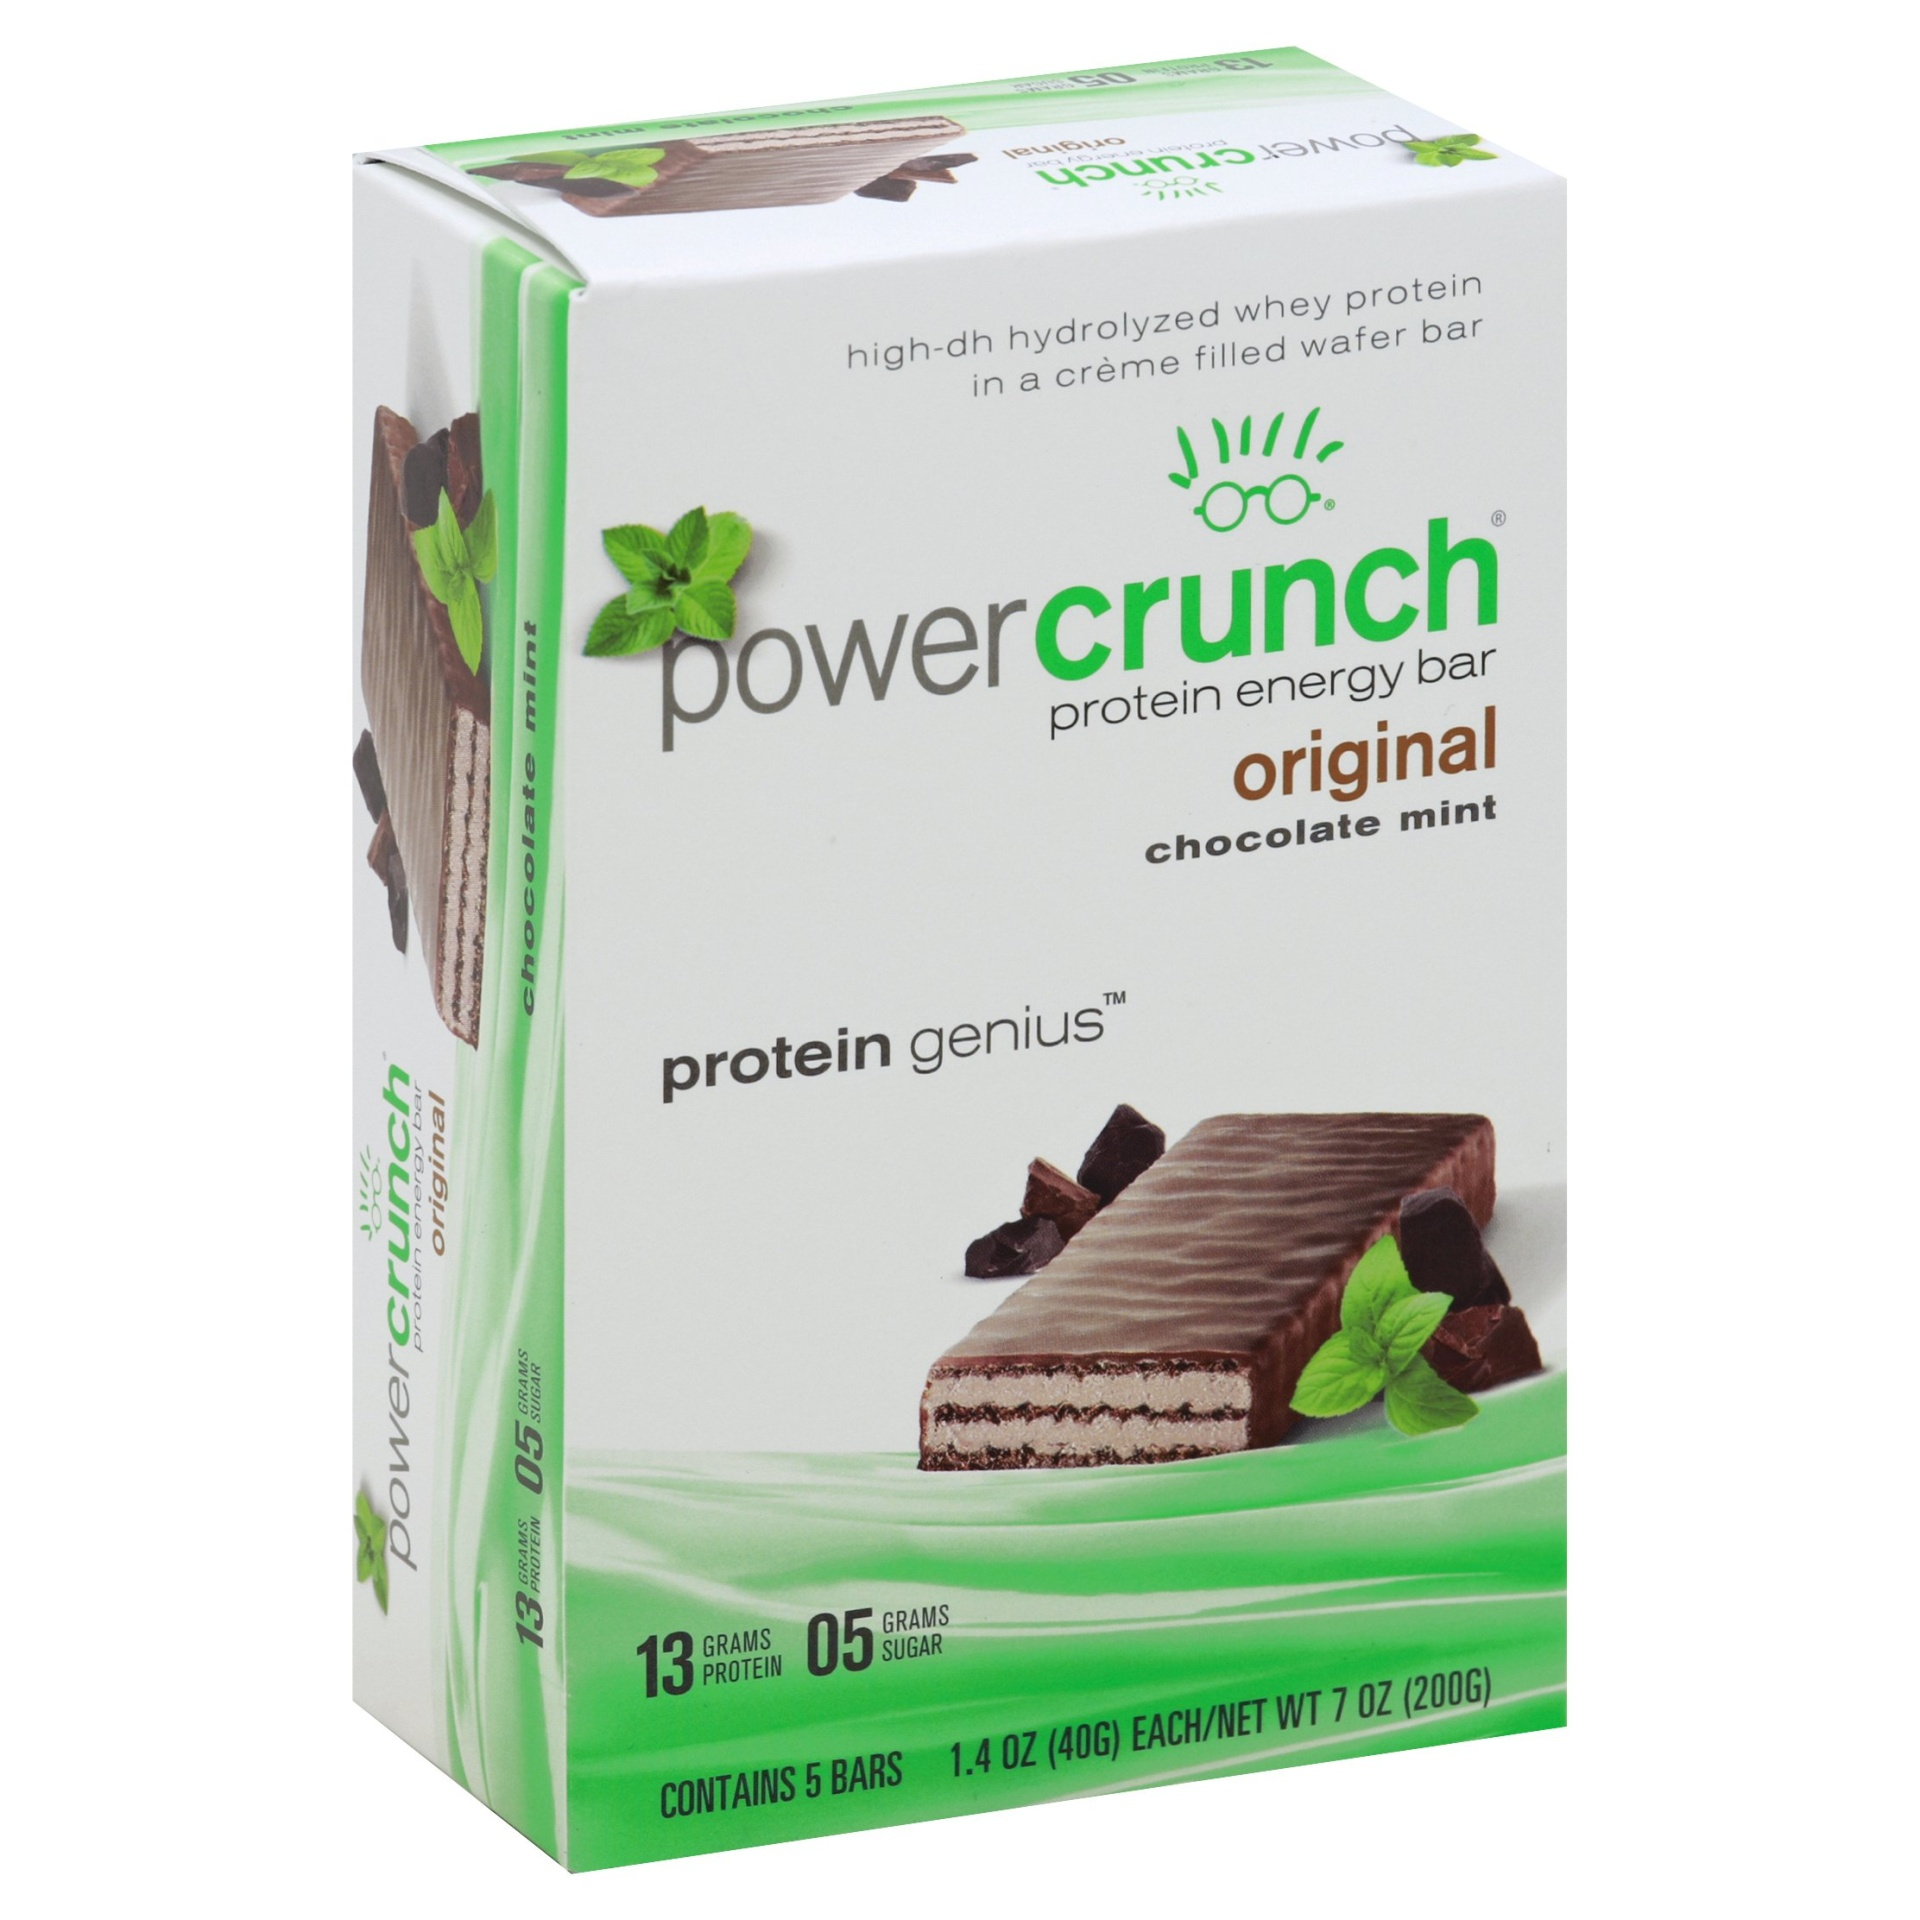 slide 1 of 1, Power Crunch Protein Energy Bar Original Chocolate Mint,